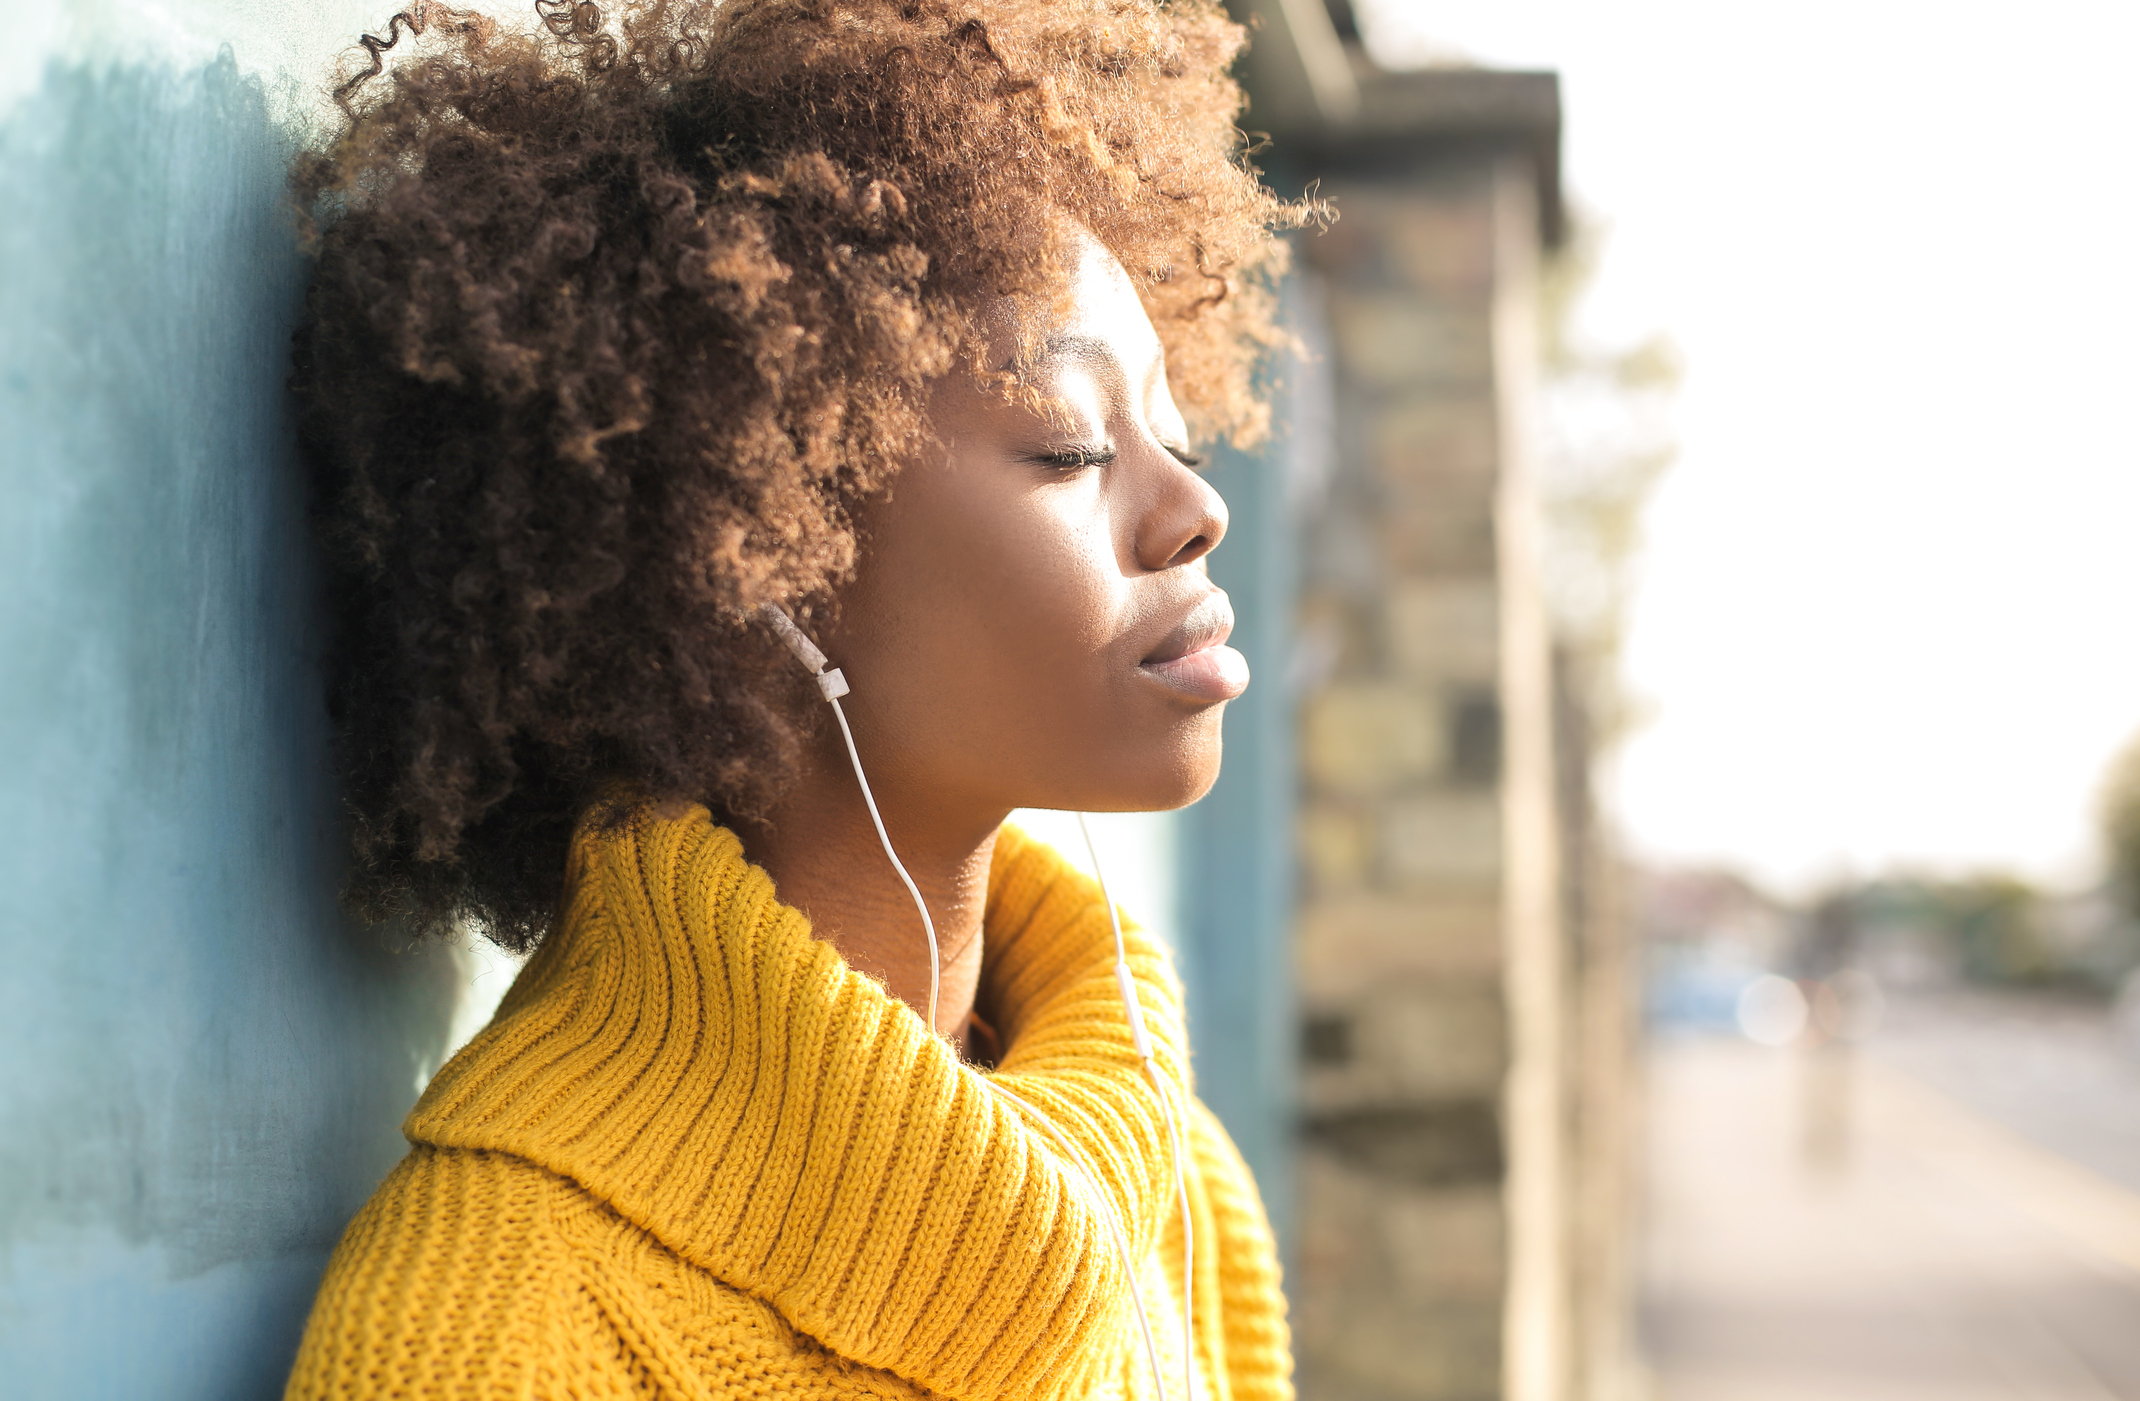 Woman listening to music to stay calm with anxiety